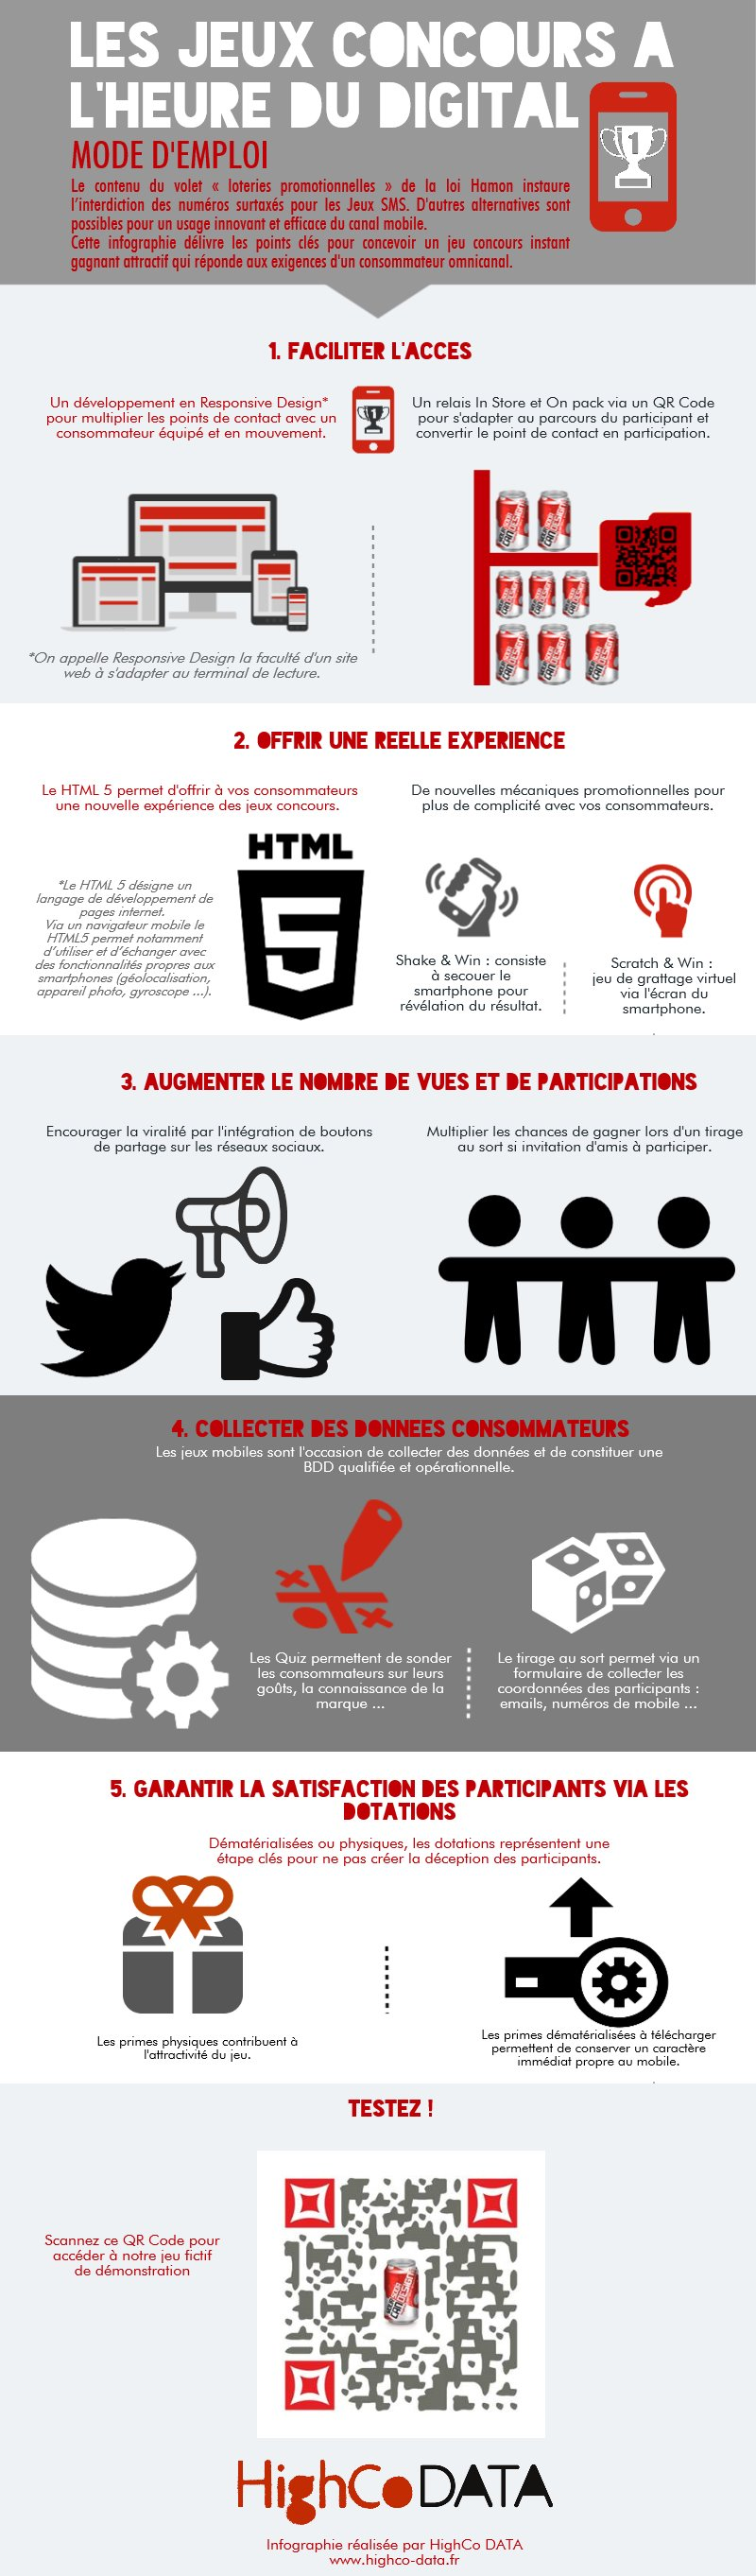 Infographie HighCo DATA Jeux mobiles